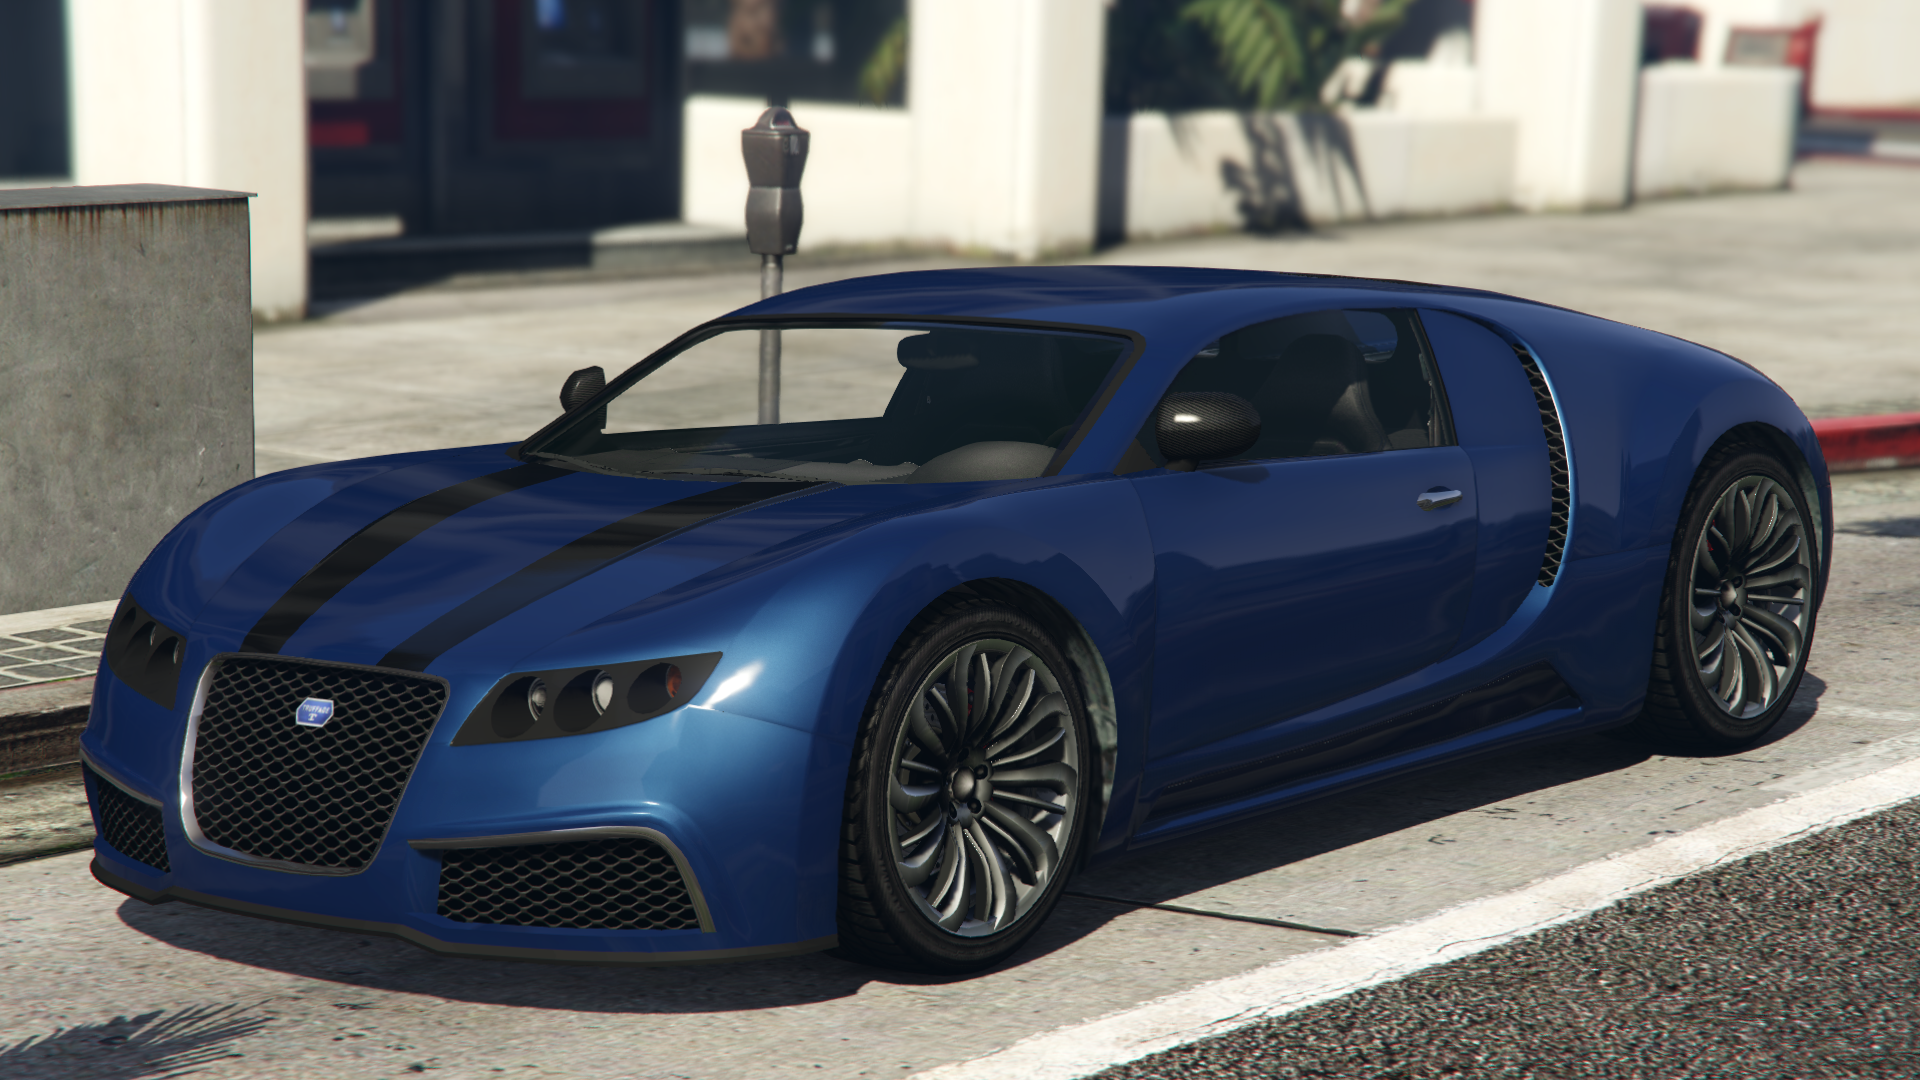 Adder on the best and fastest car in gta 5 coil